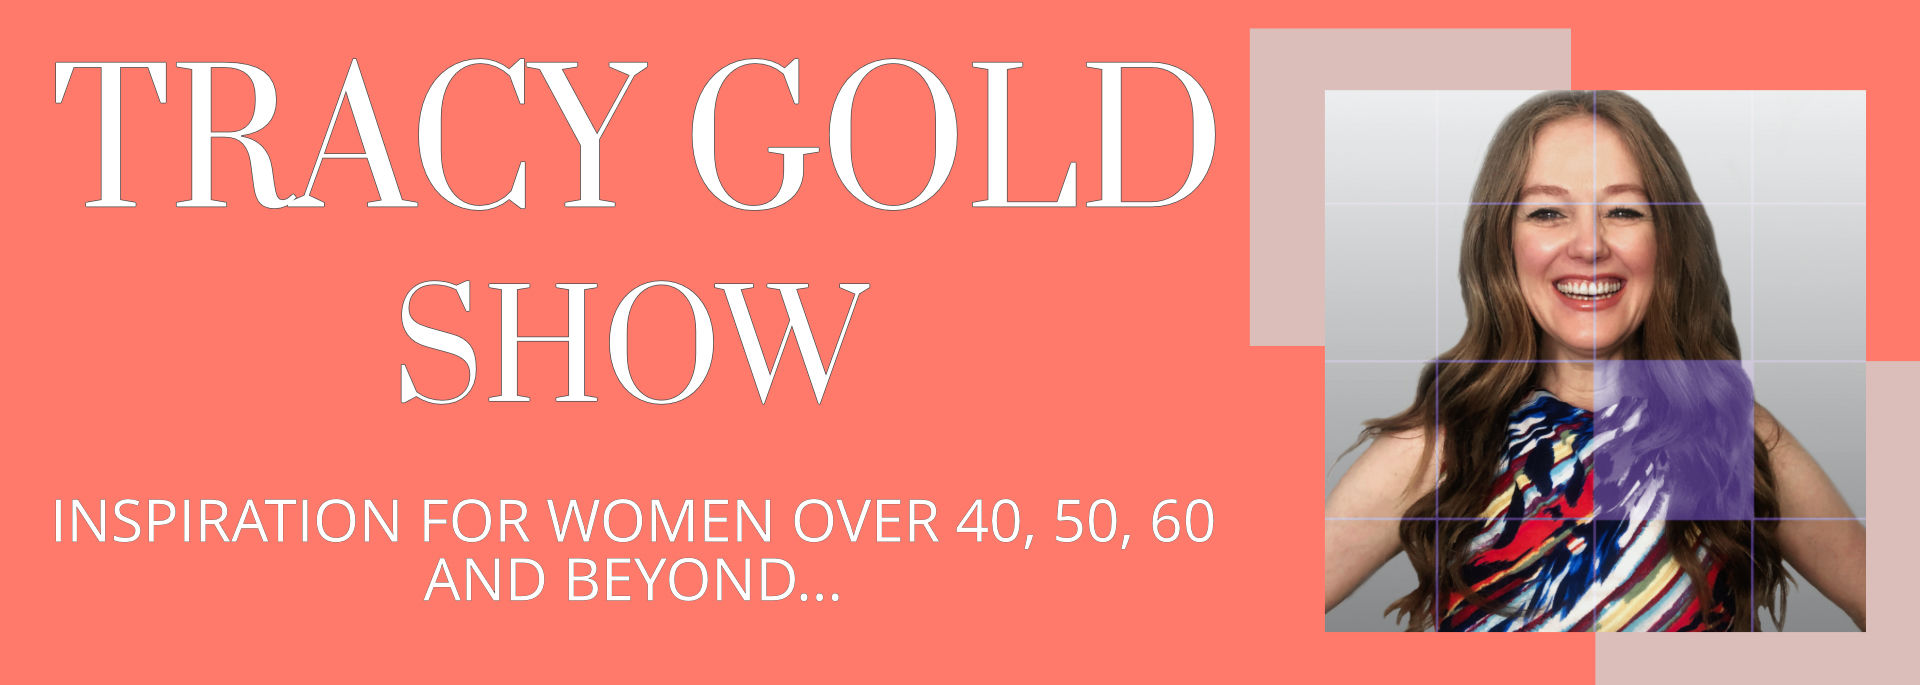 #Tracy Gold Show channel